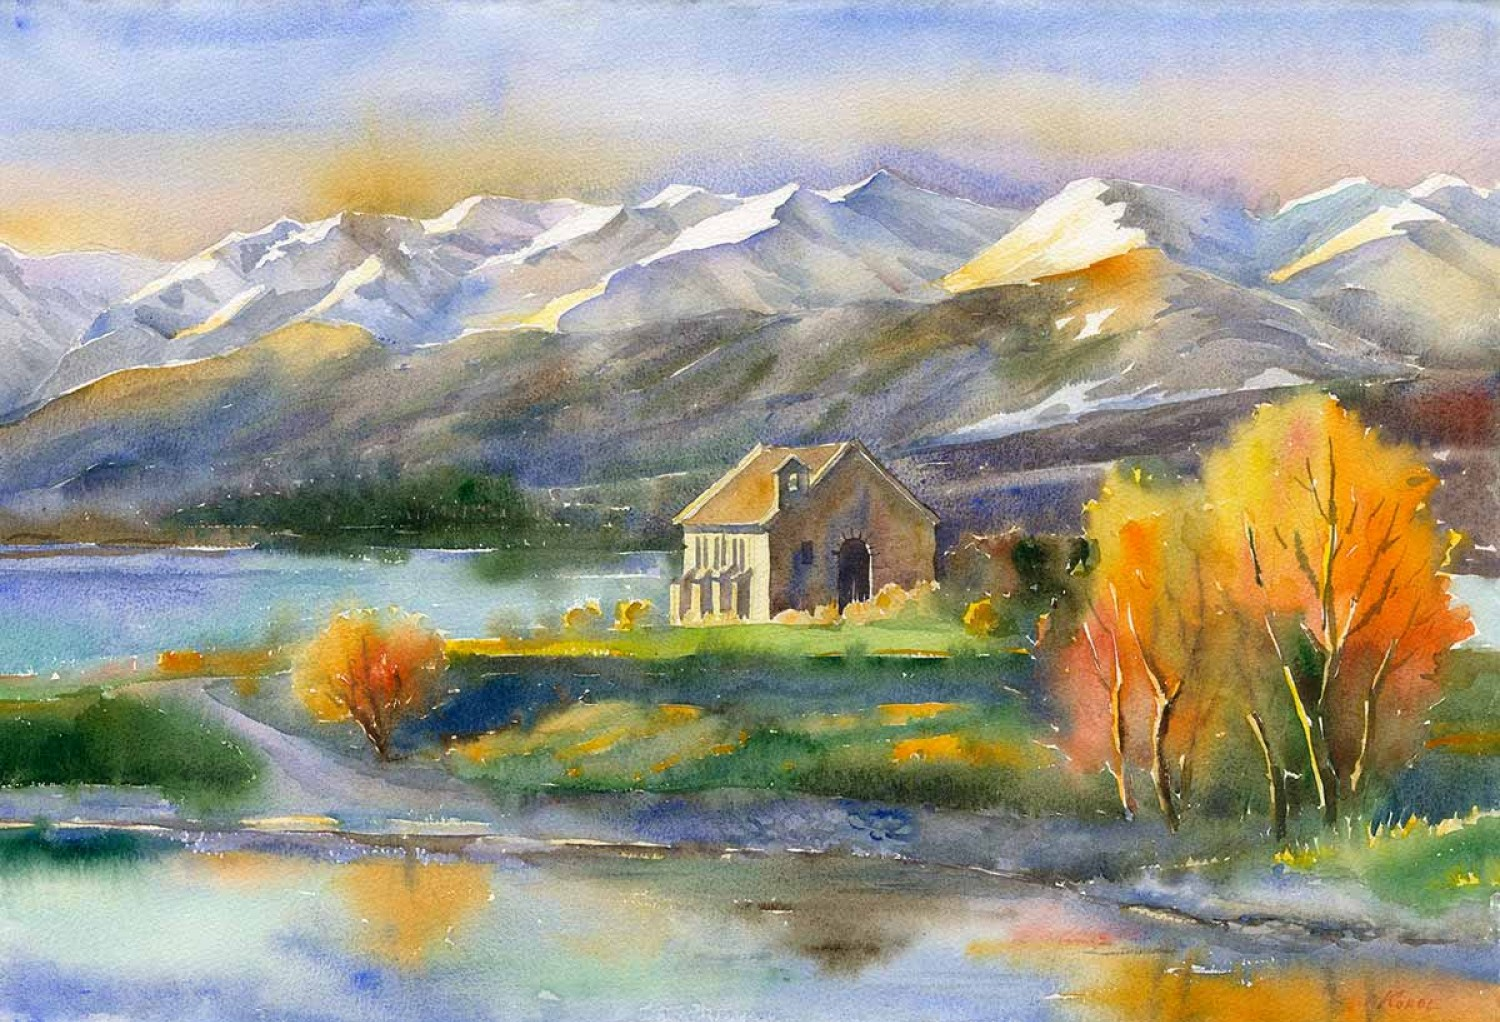 Painting from New Zealand with snow capped peaks and blue lake with trees of autumn colours reflecting in the water. In the centre of the artwork is the Church of Good Hope standing solitary in this astounding landscape.